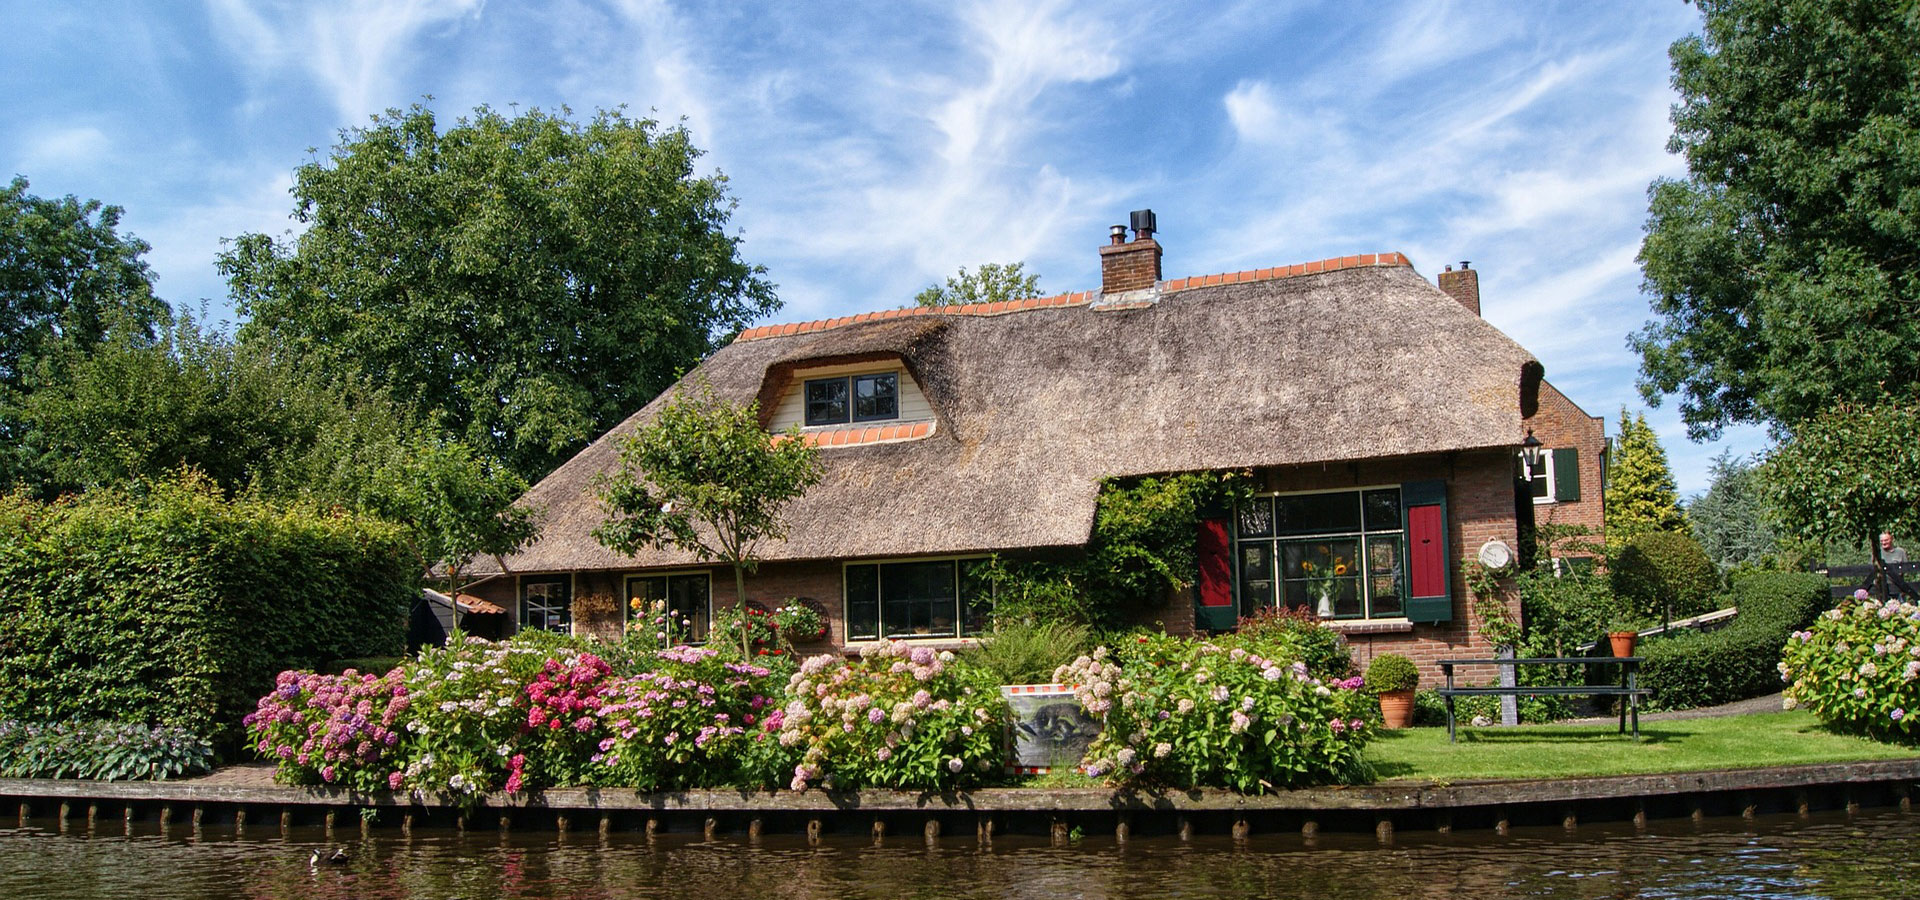 Thatched Home Insurance - The Home Insurer